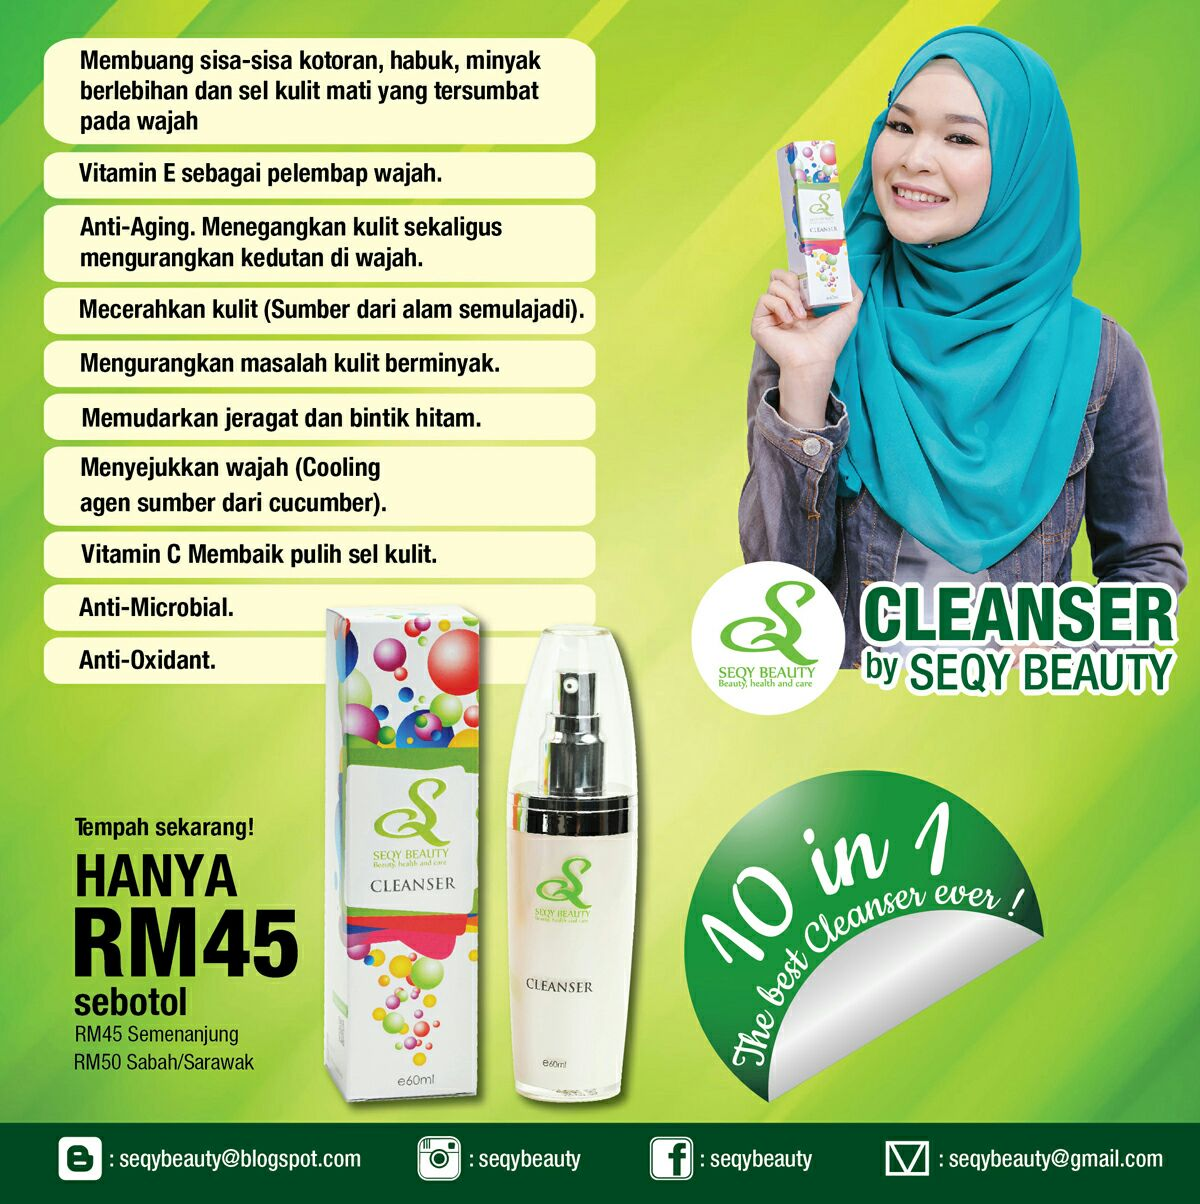 SEQY BEAUTY - Cleanser